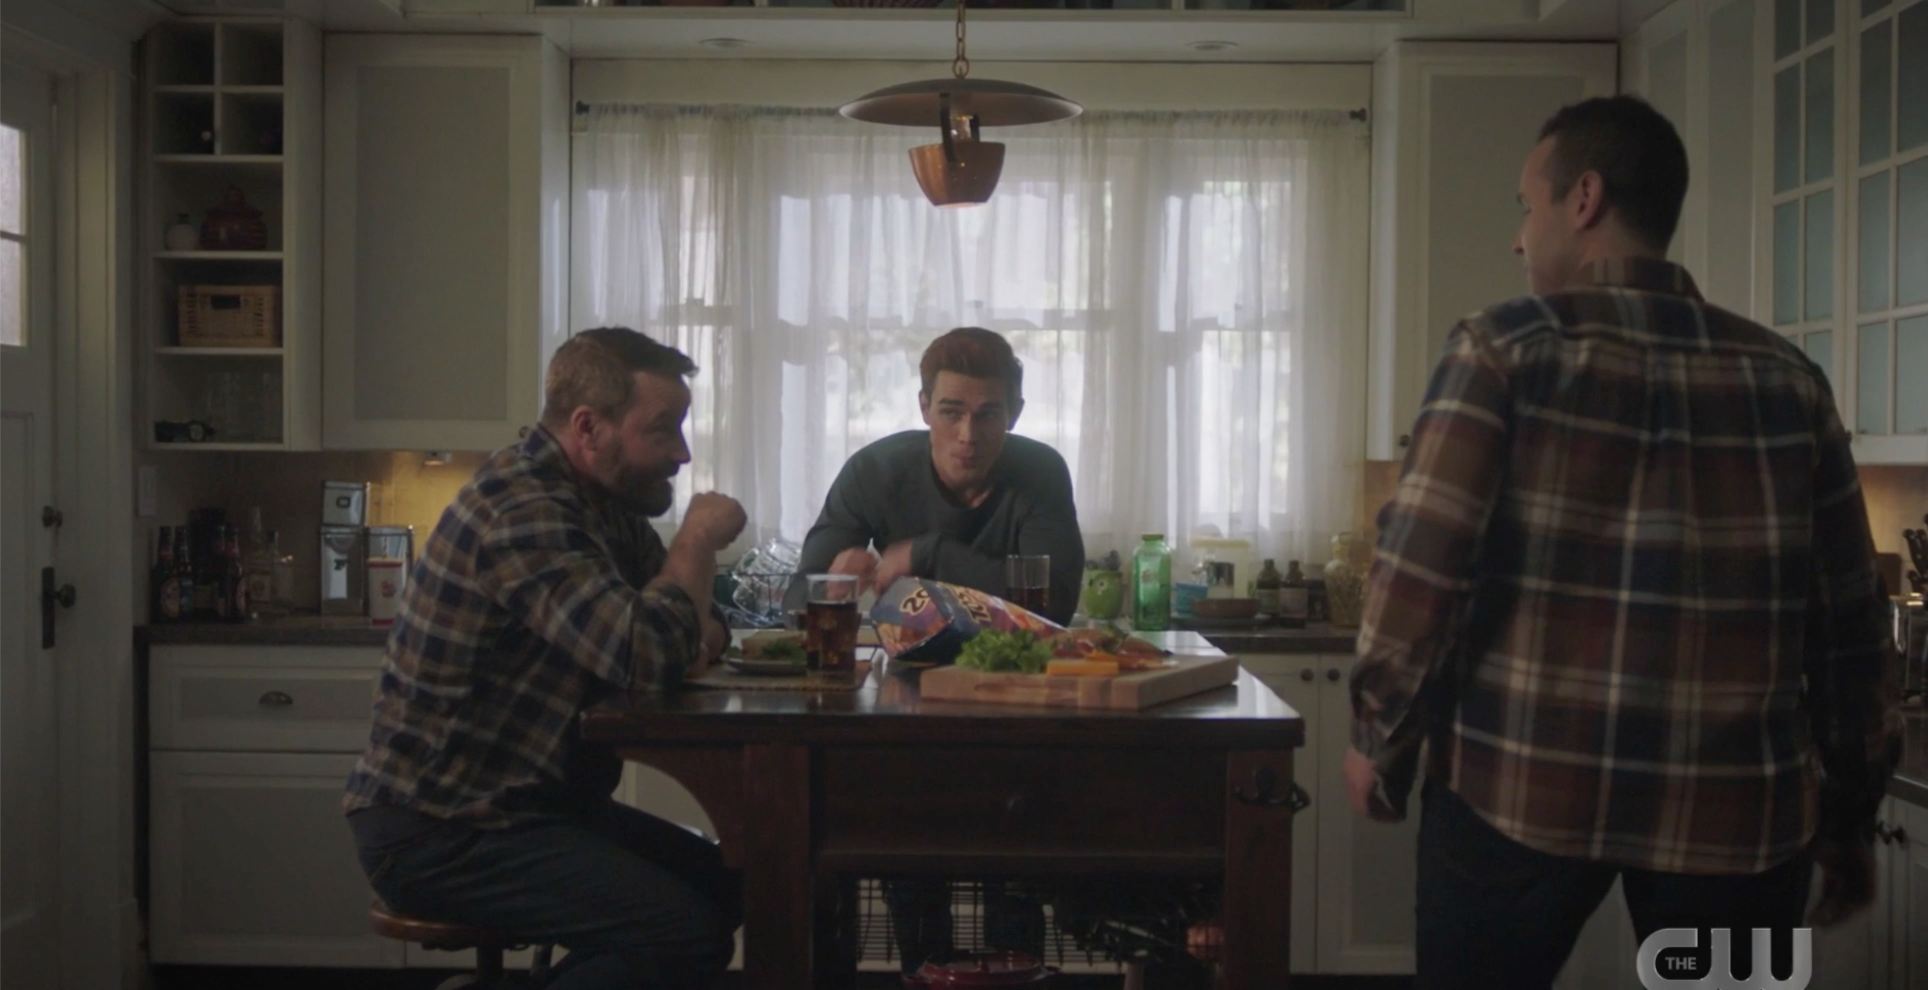 Archie, Frank, and Eric in the kitchen with Tostitos chips